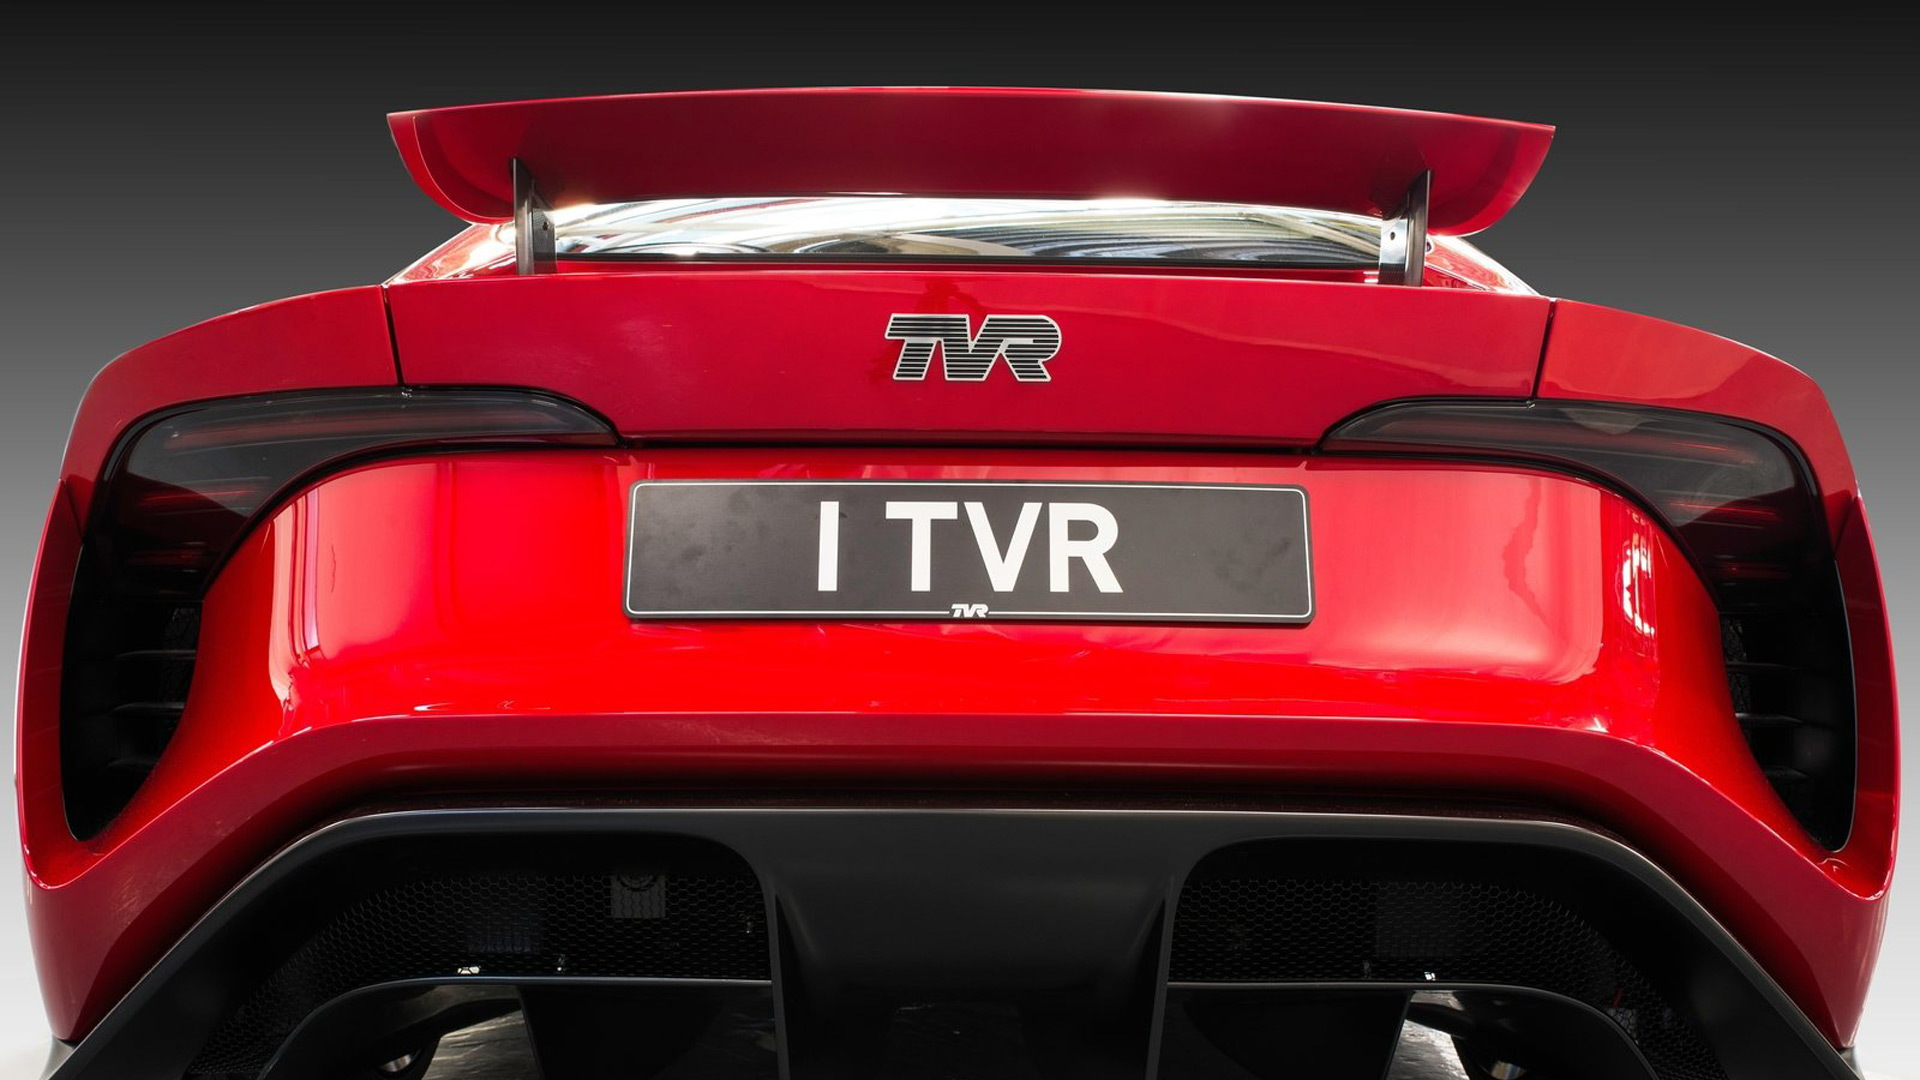 TVR Griffith prototype, 2017 Goodwood Revival